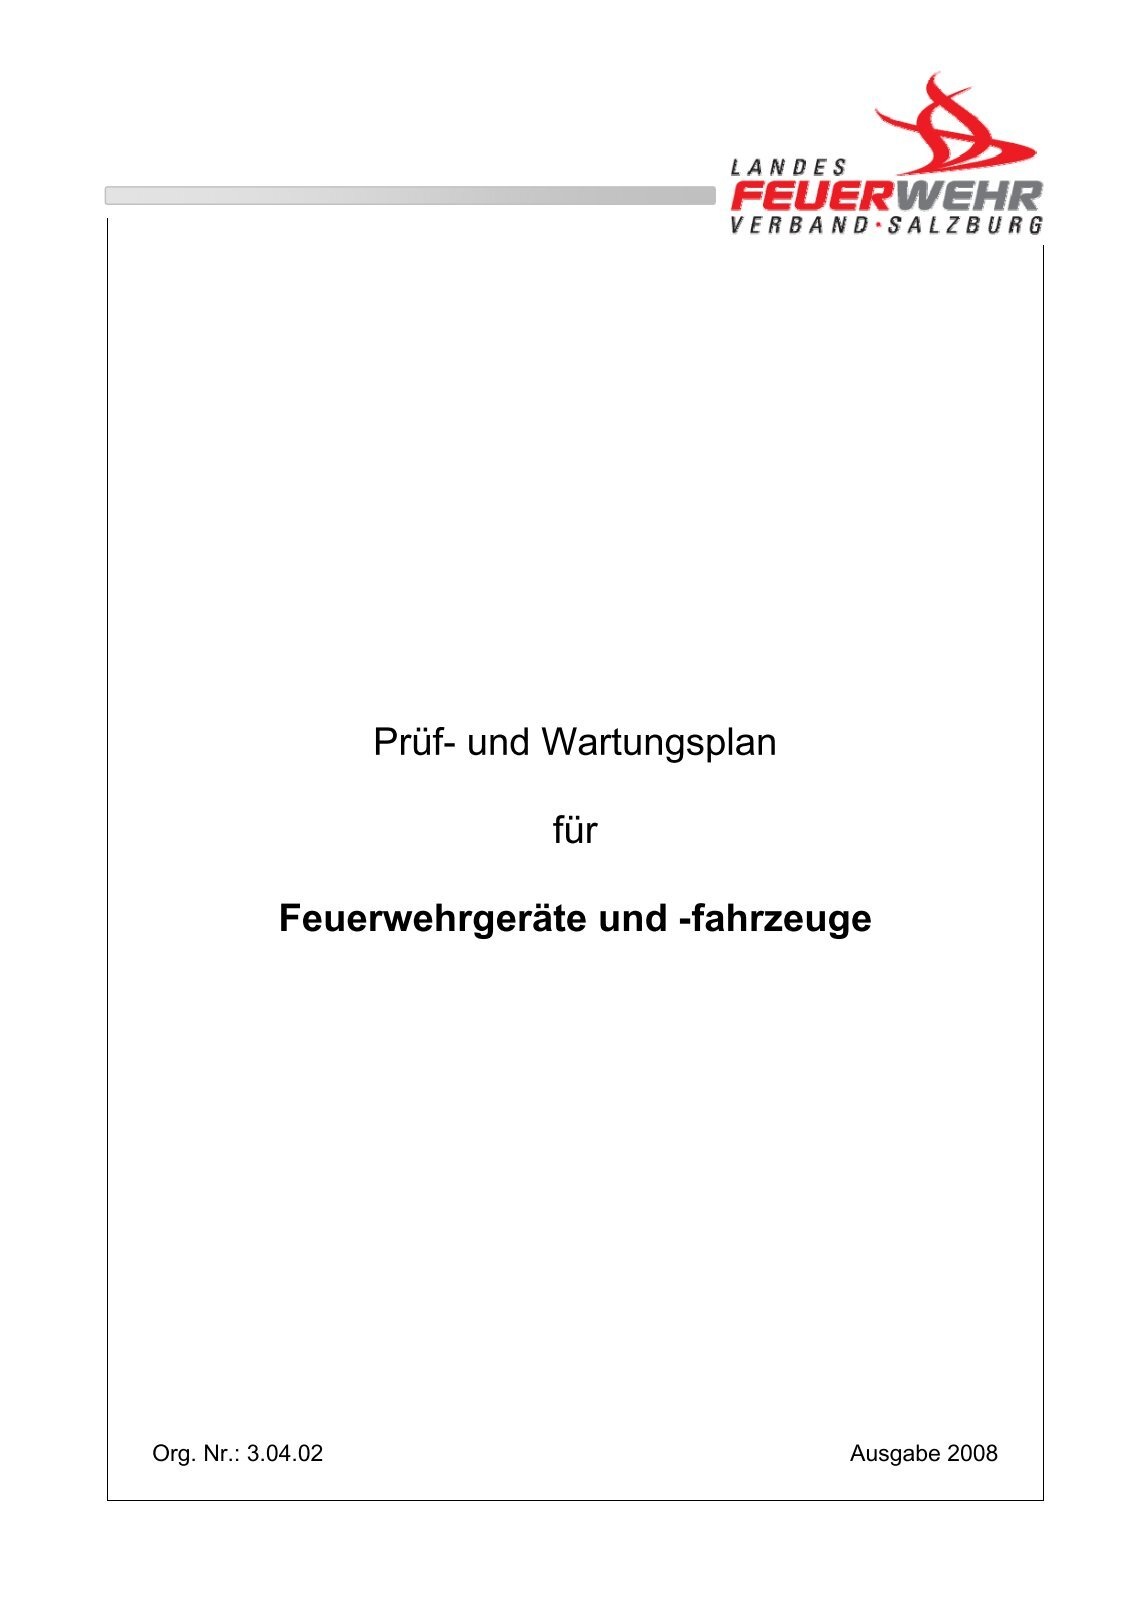 6 free Magazines from FF.WERFENWENG.AT